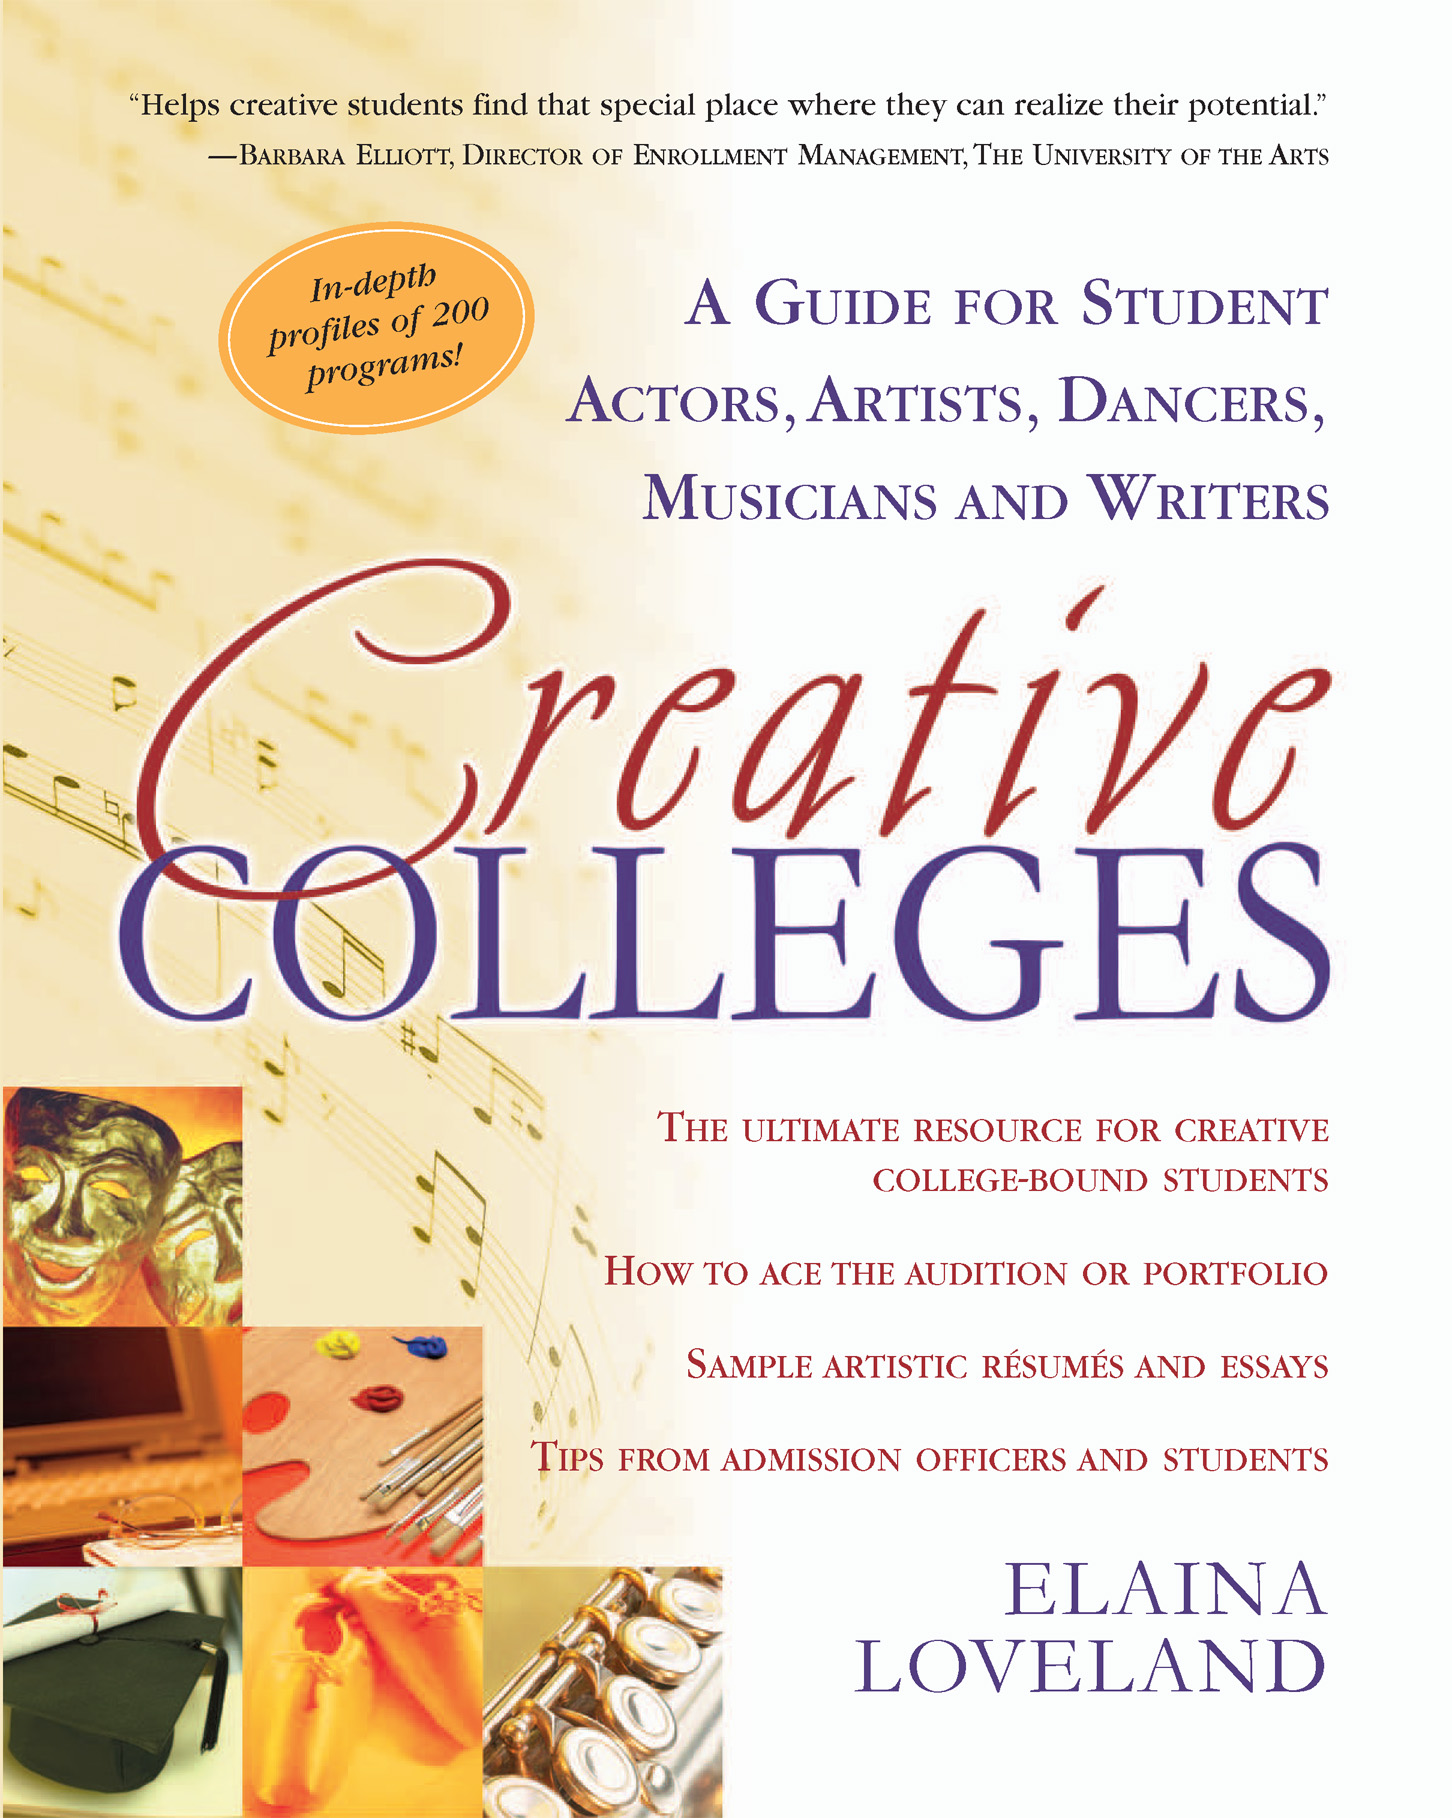 Creative writing services major colleges